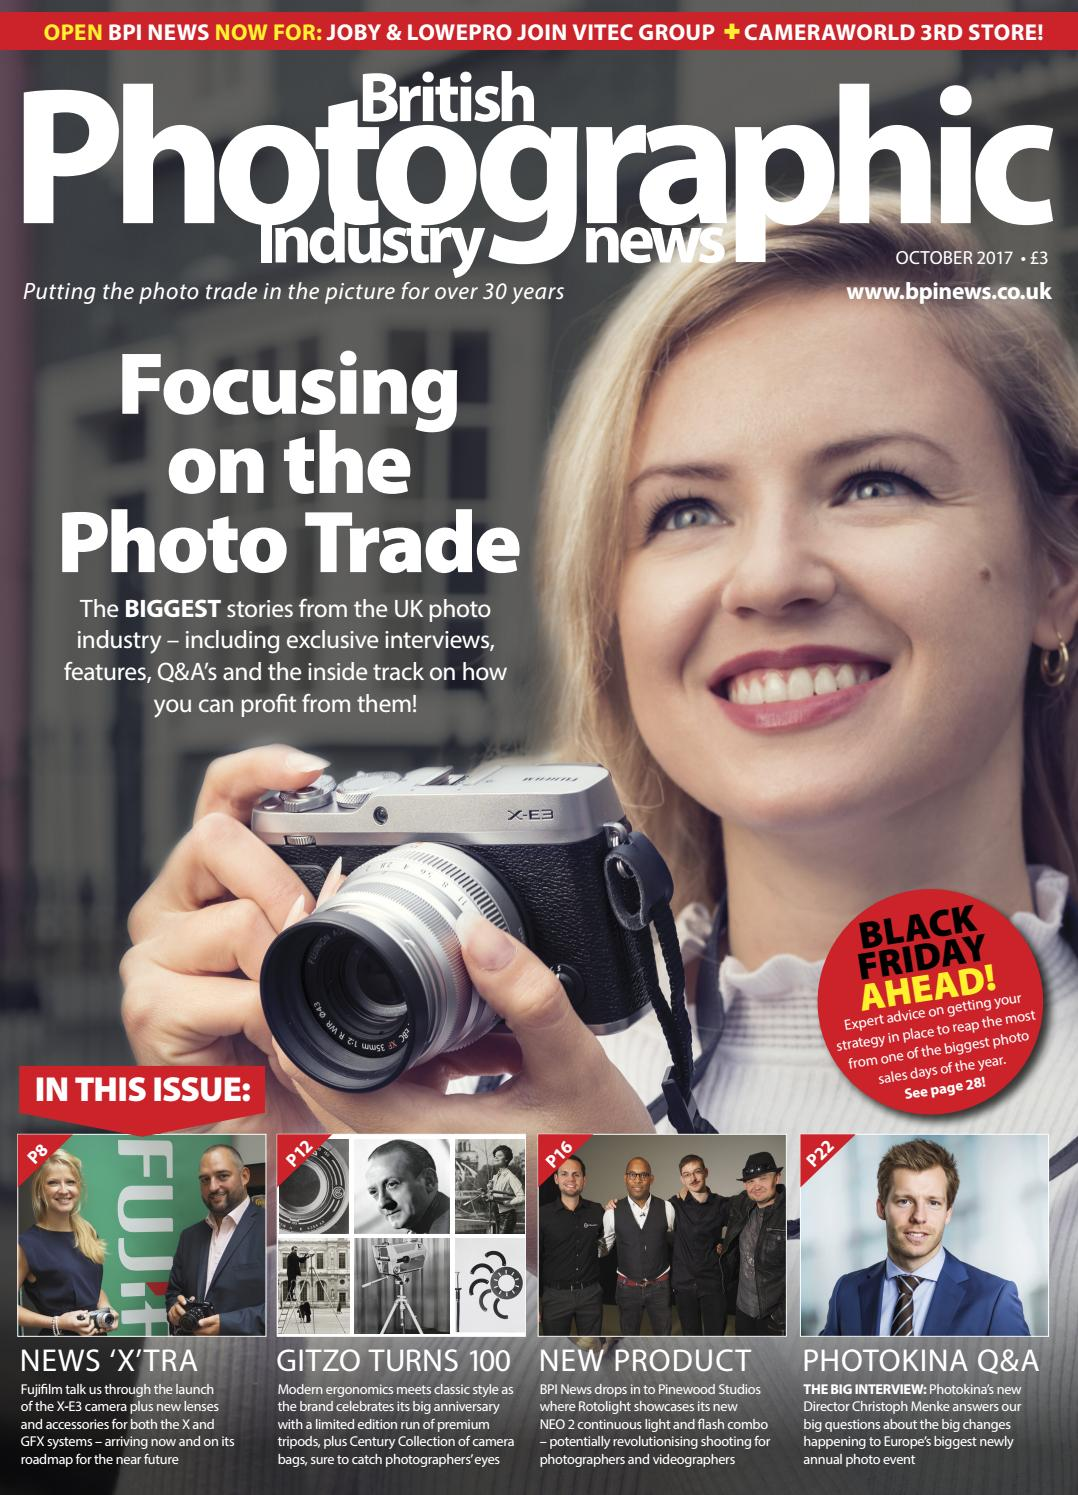 British Photographic Industry News October 2017 by BPI News